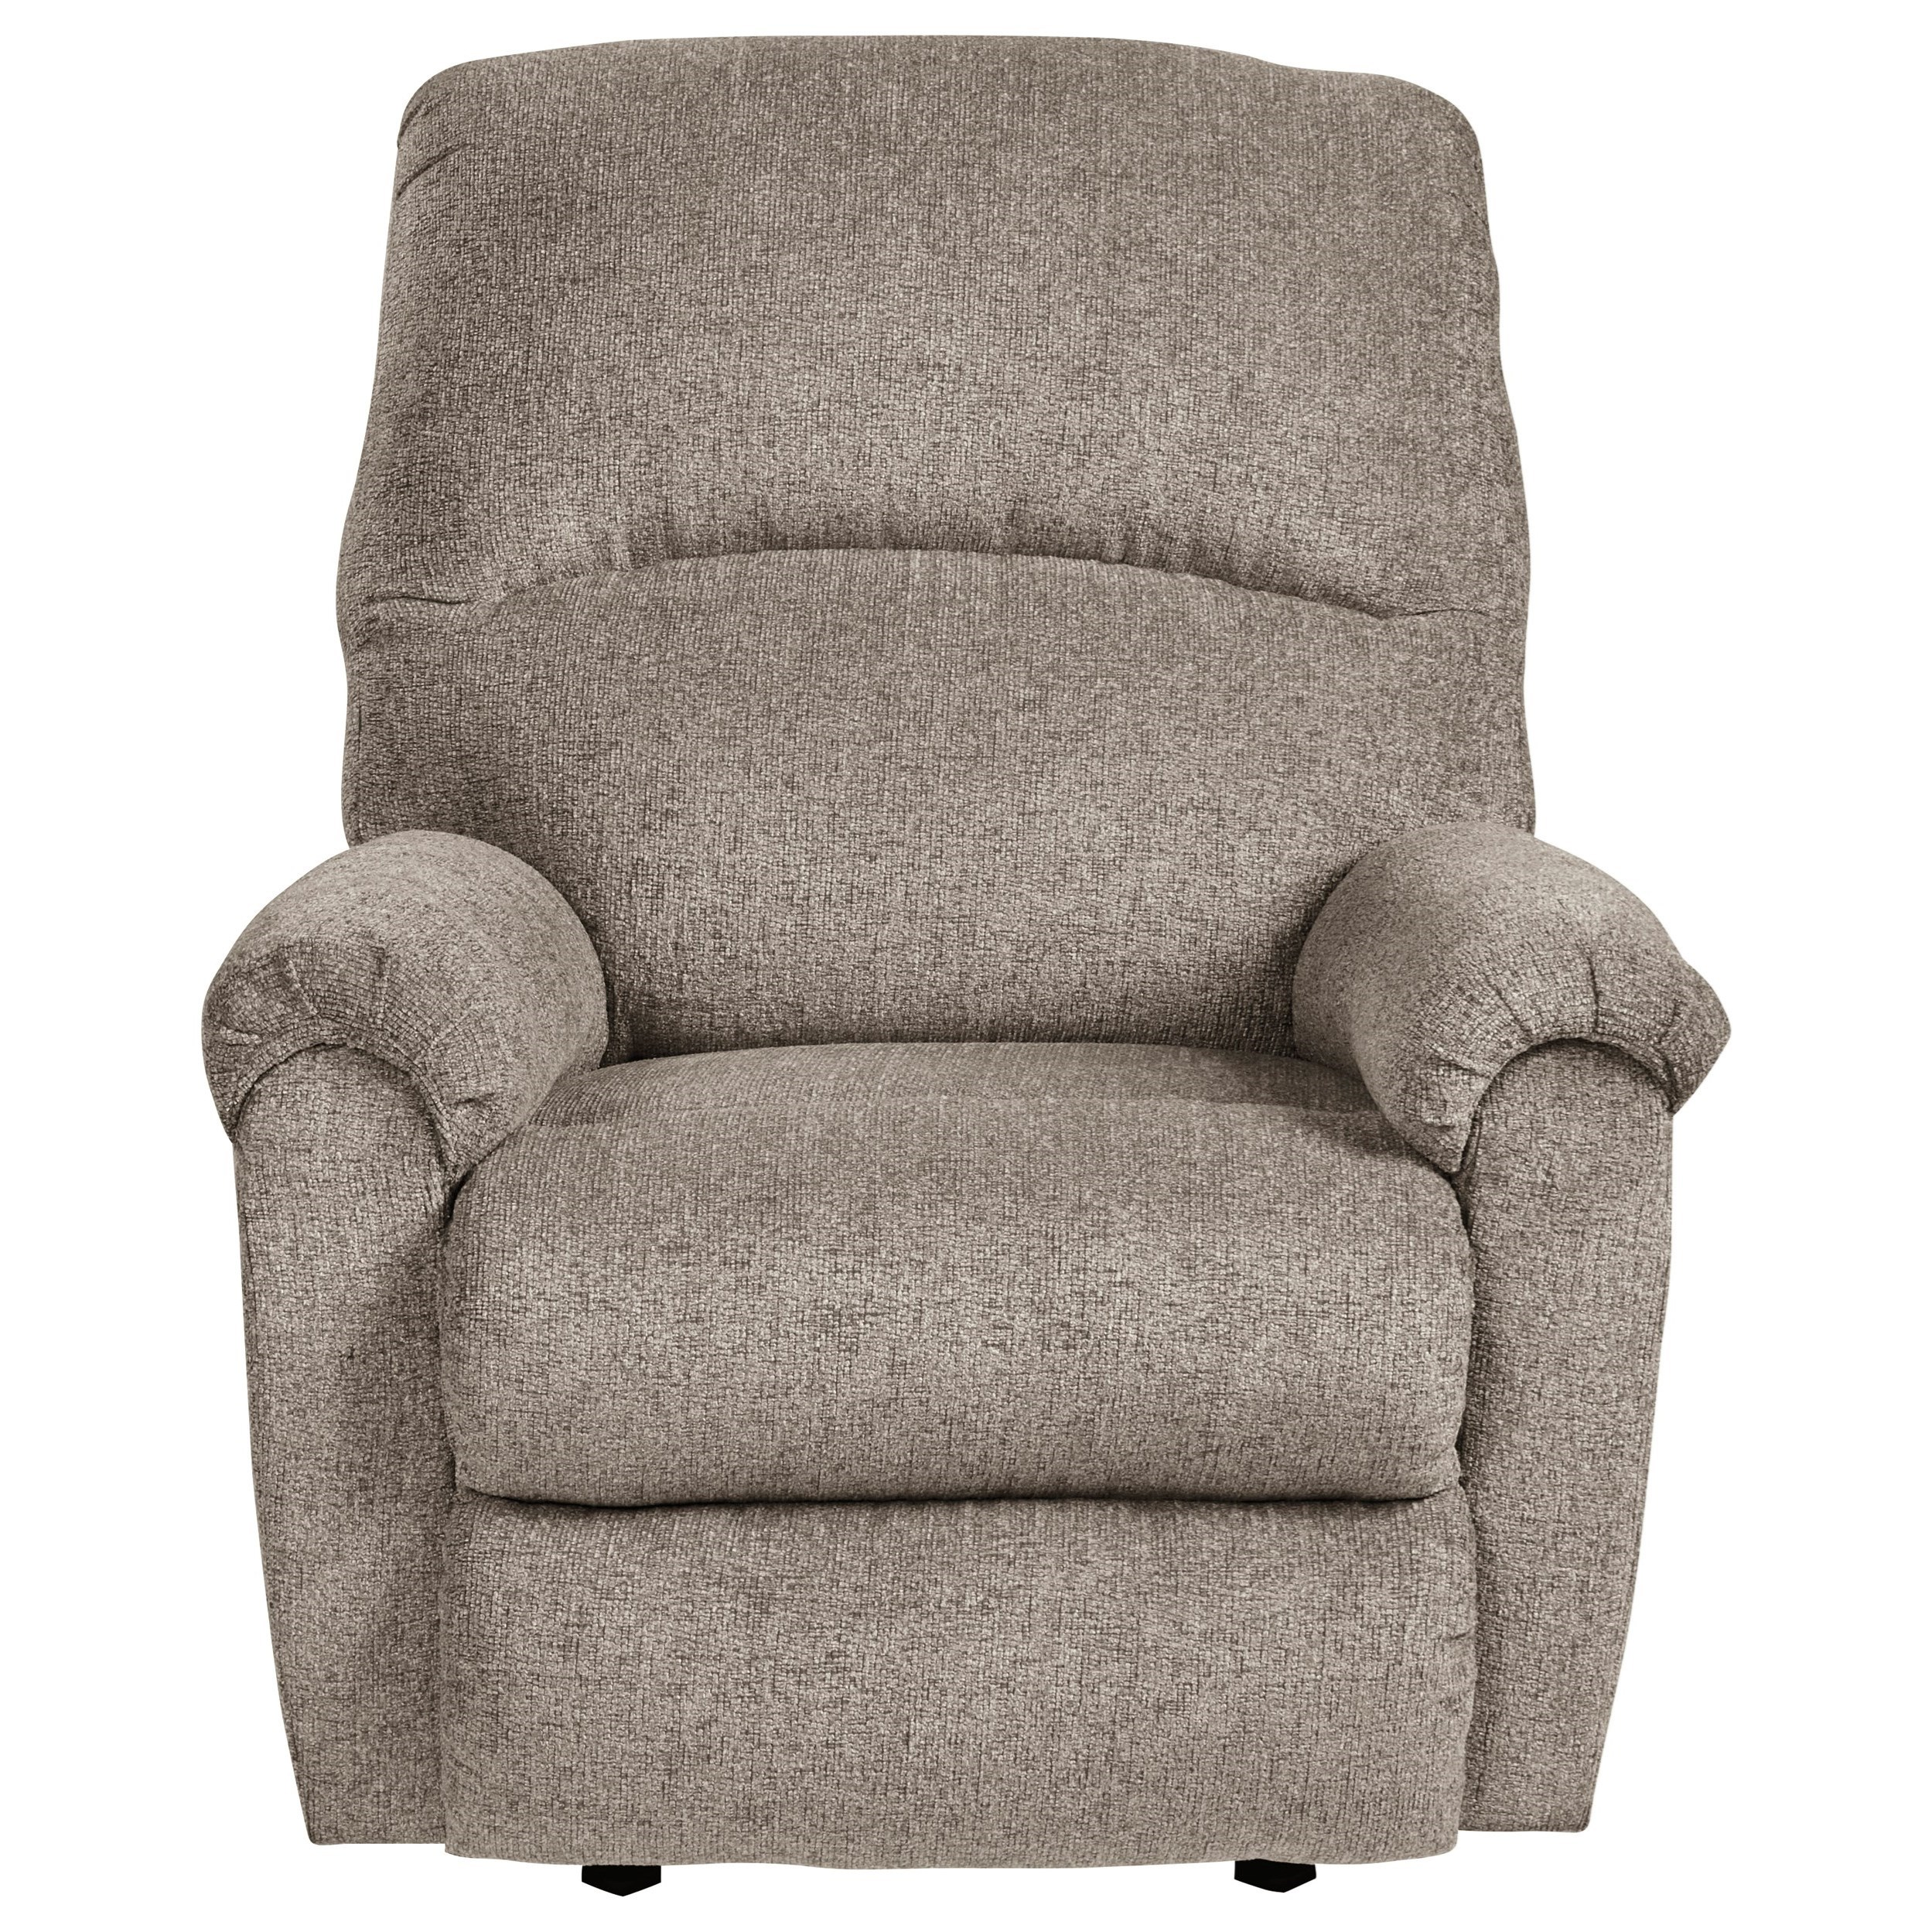 Ballinasloe Rocker Recliner by Benchcraft at Virginia Furniture Market